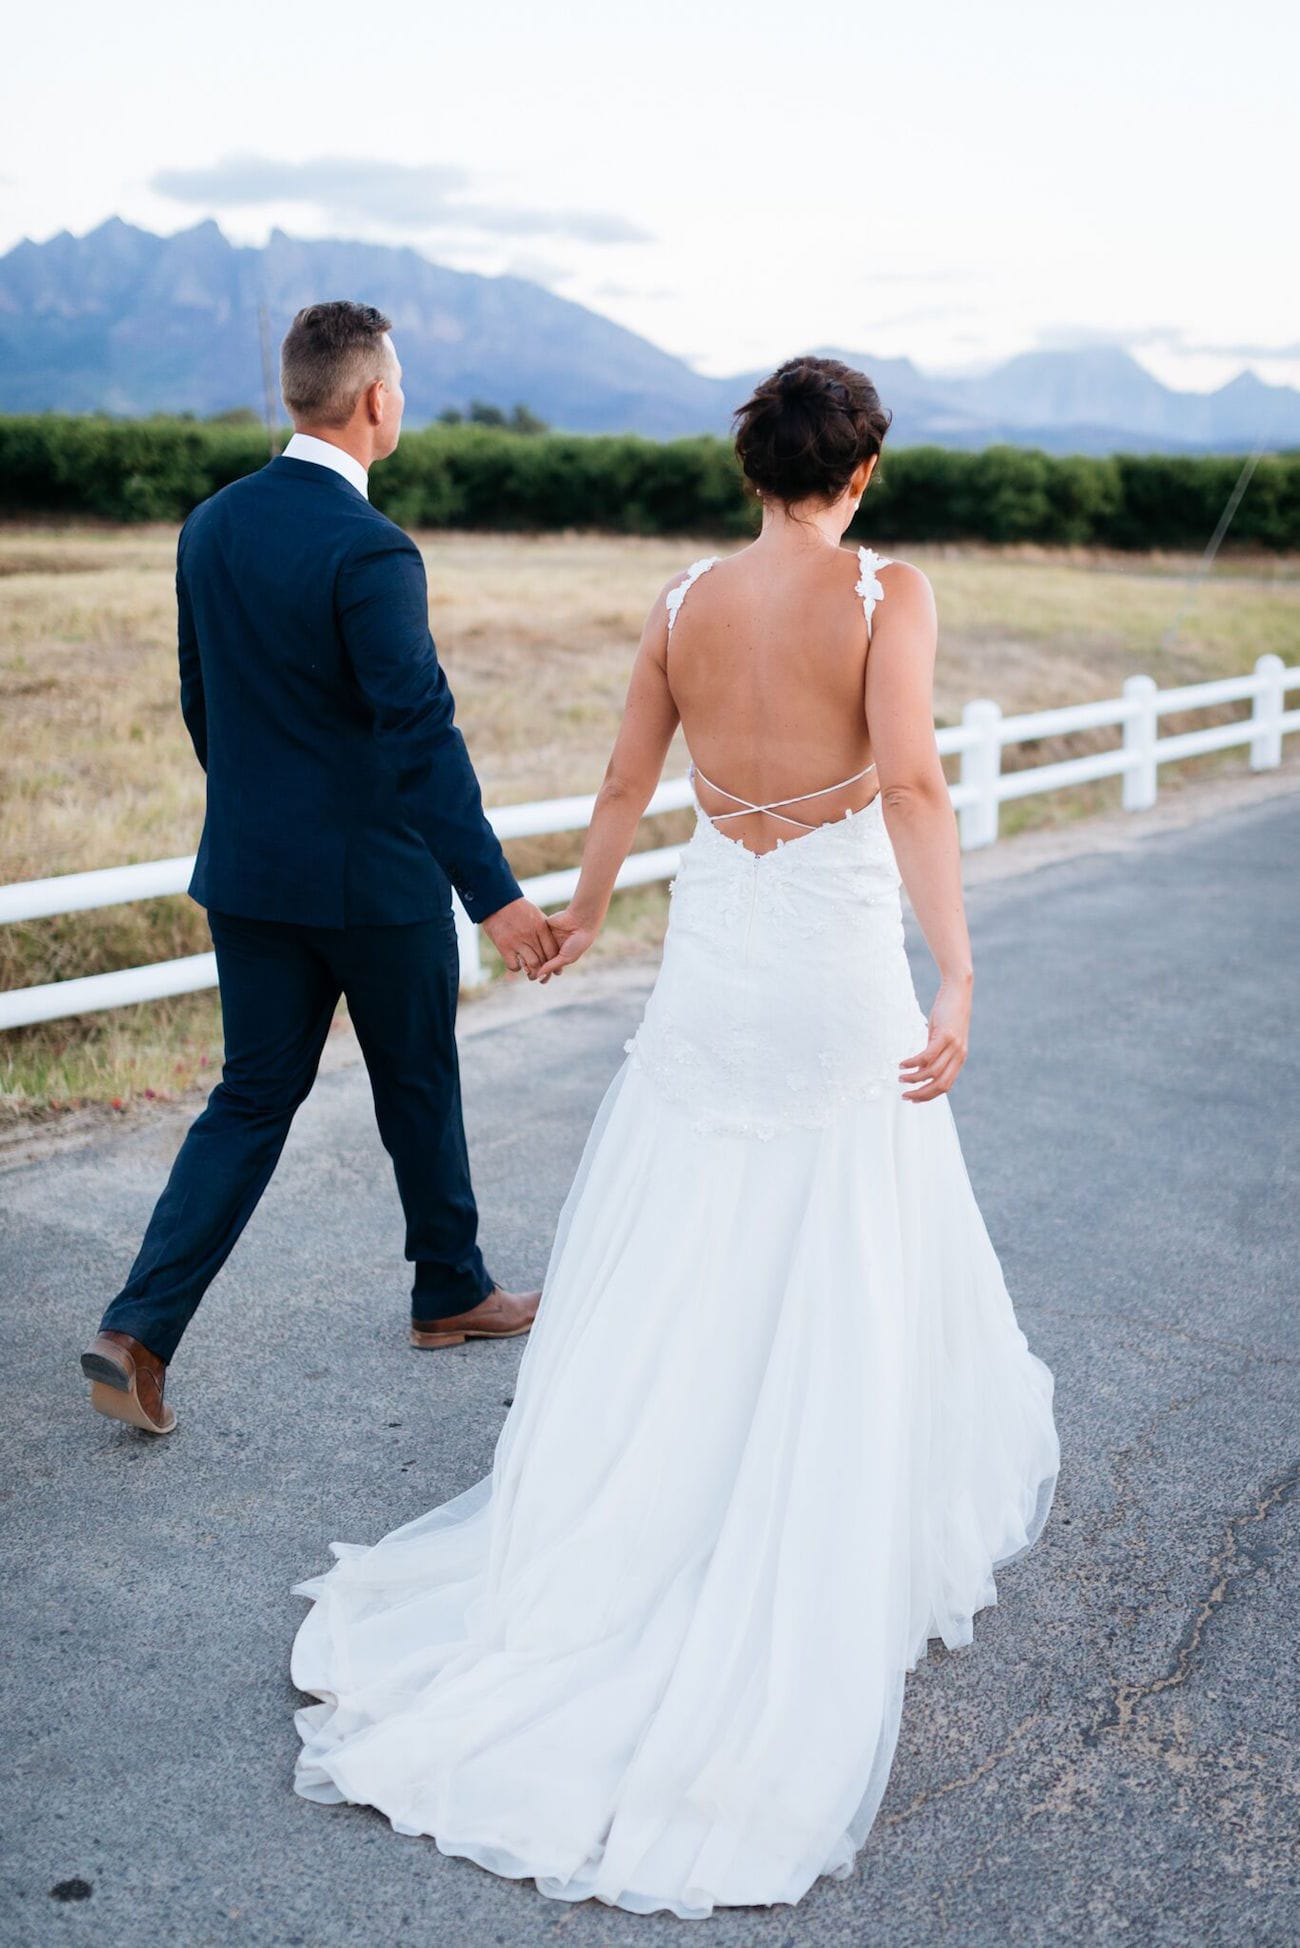 Bride in strappy low back wedding dress with criss-cross detail | Credit: Matthew Carr